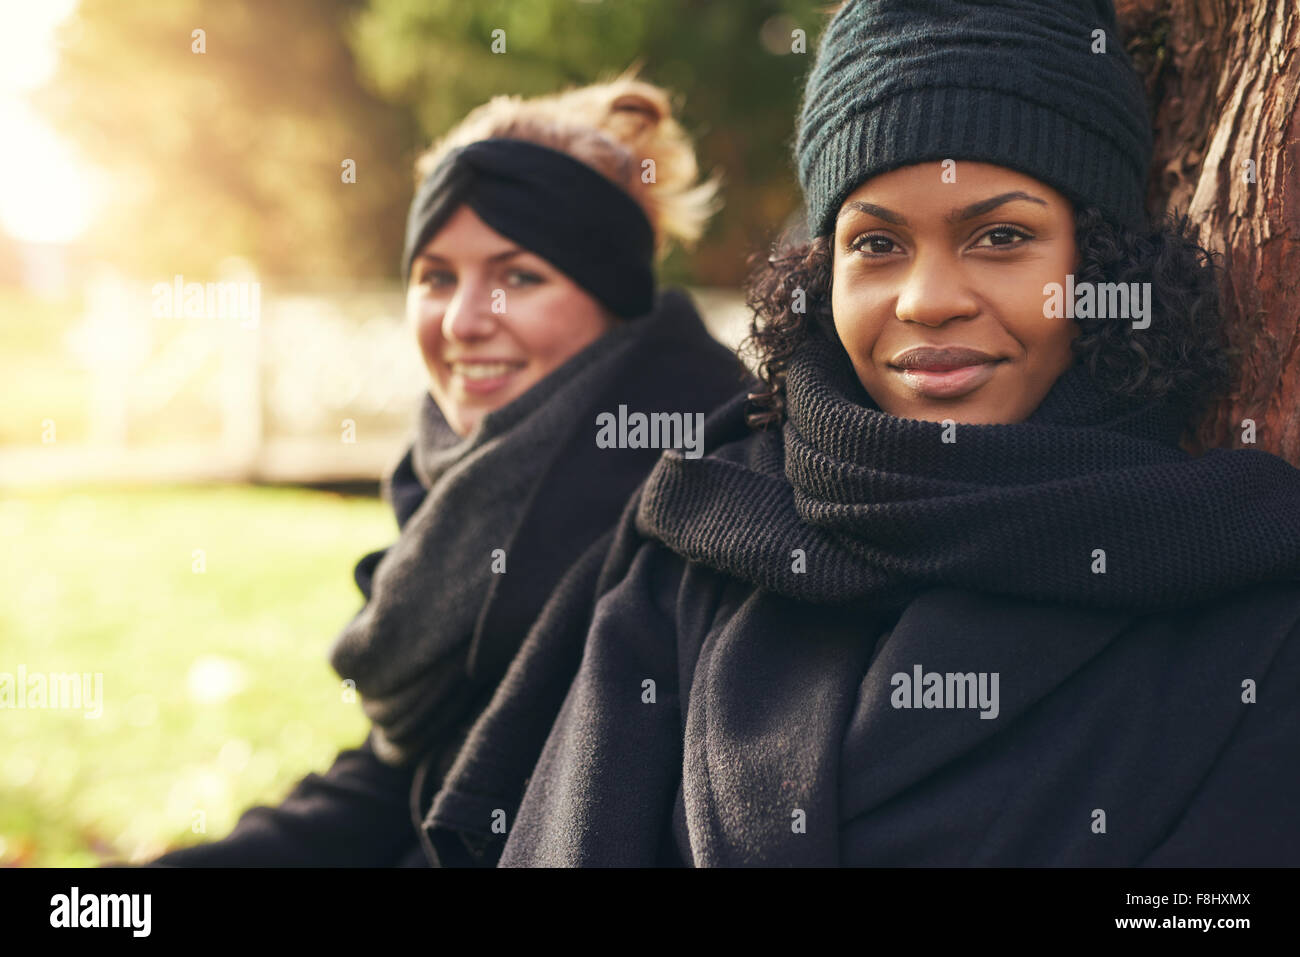 Close-up of two smiling young women leaning on tree trunk in autumnal park - Stock Image